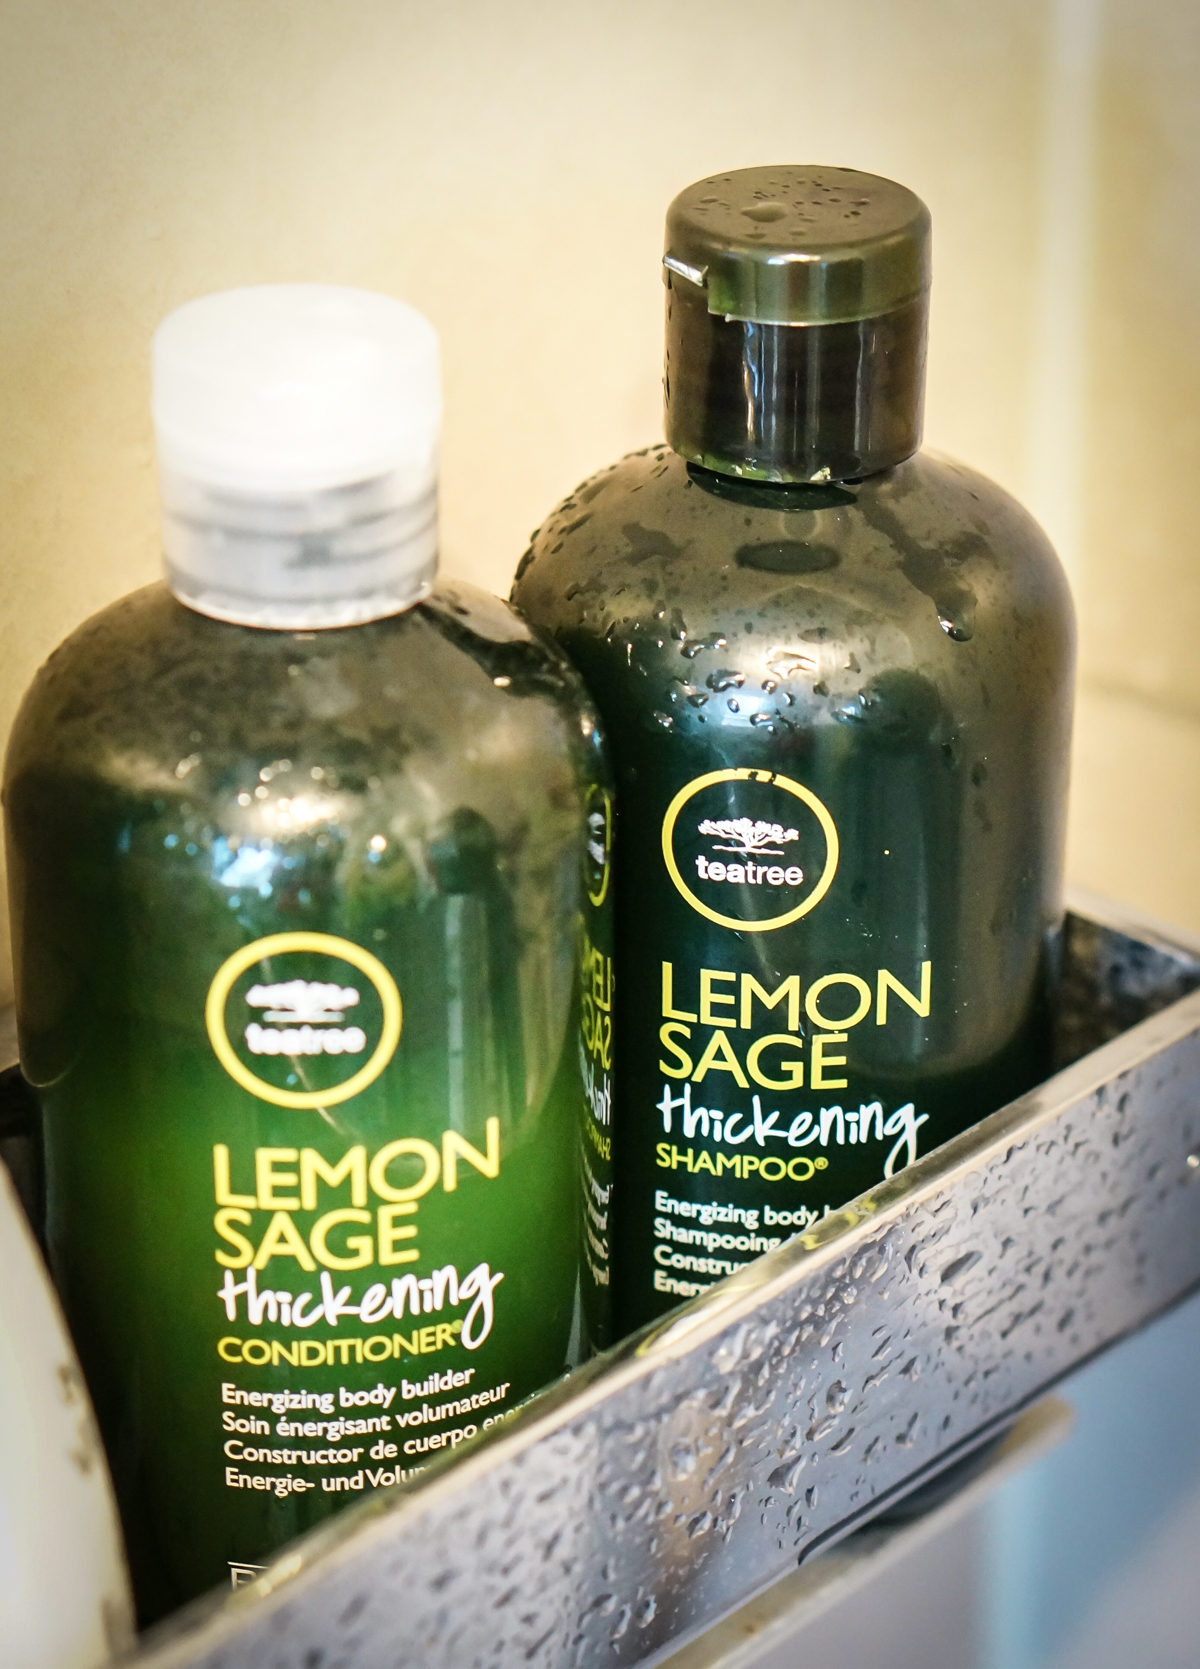 Lemon Sage Thickening Shampoo & Conditioner von Paul Mitchell aus seiner Tea Tree Serie